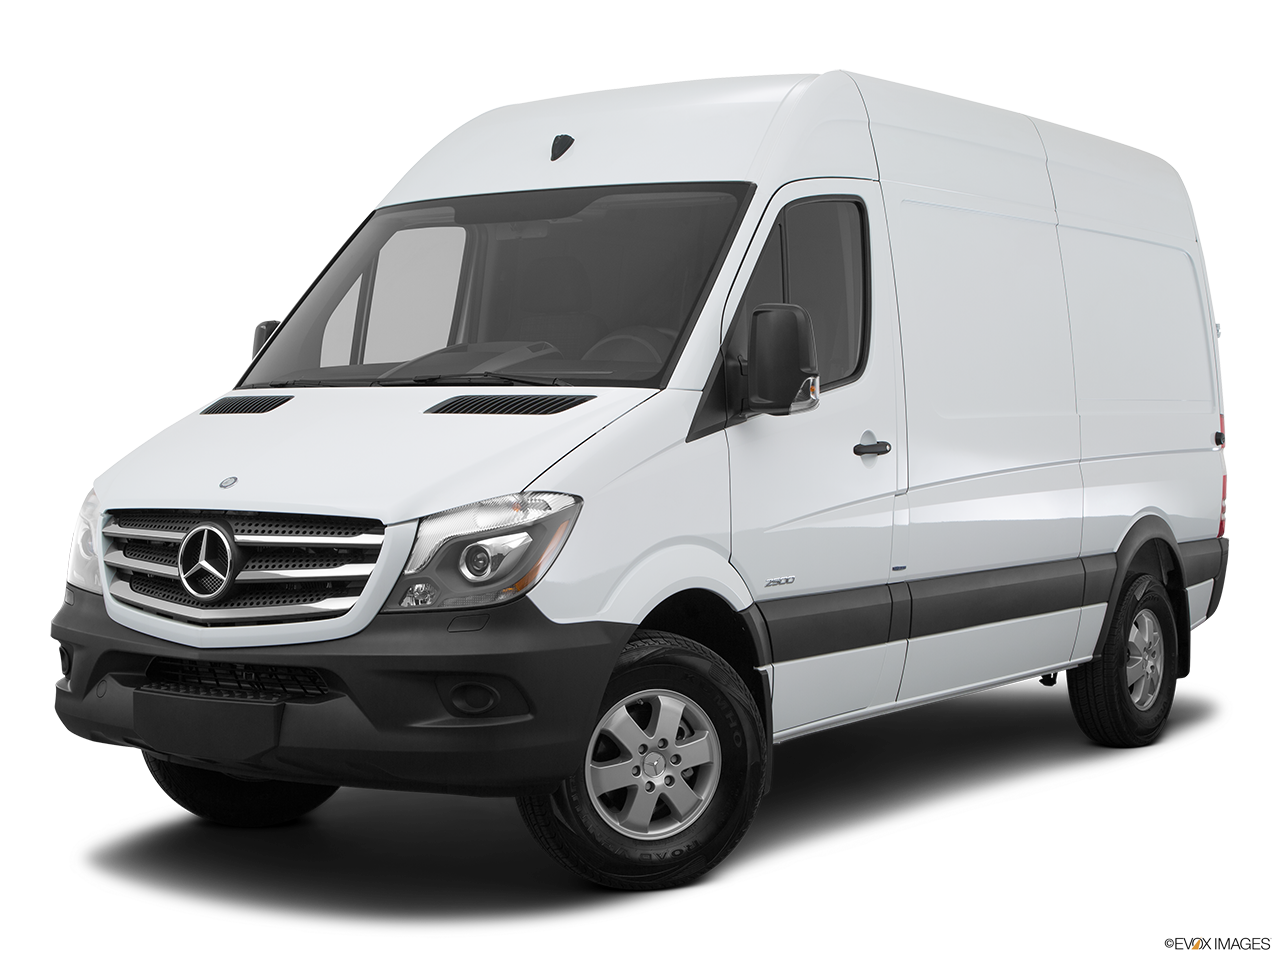 Image gallery mercedes benz van for Mercedes benz van